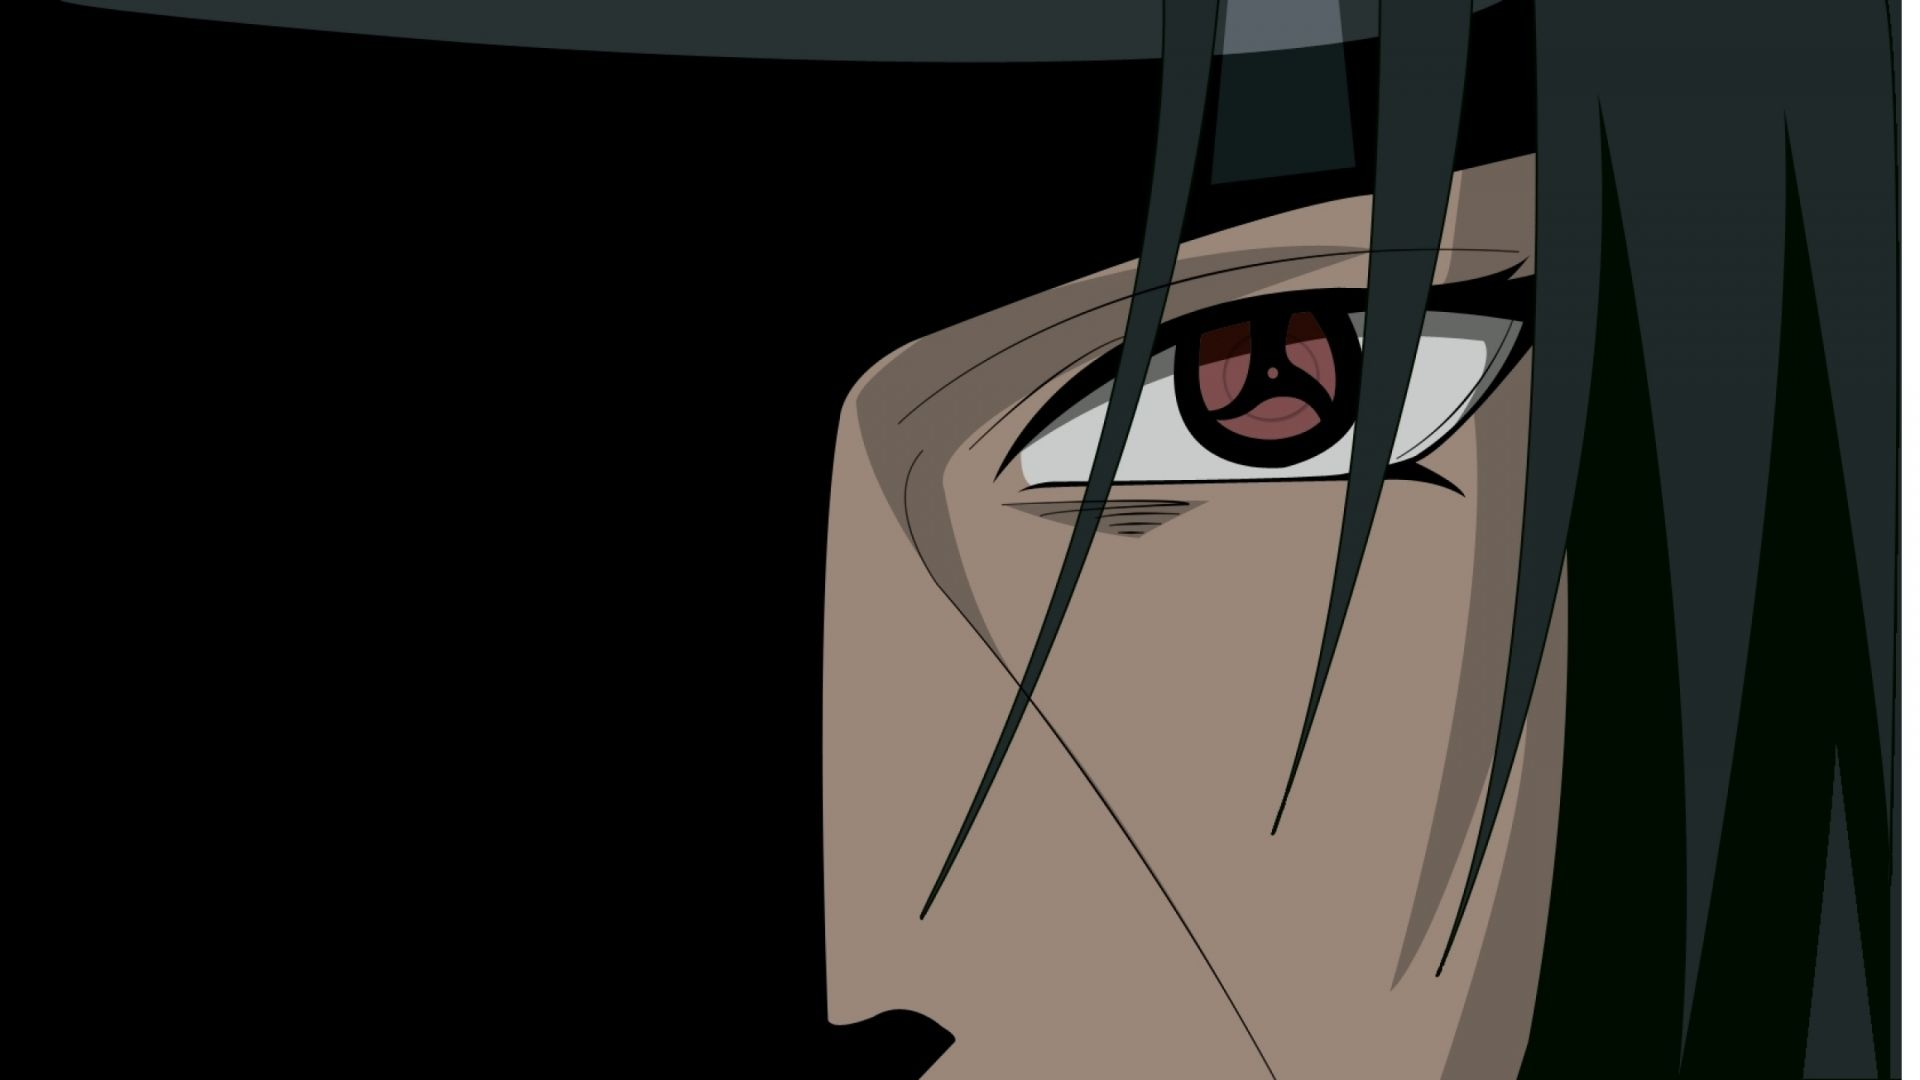 1920x1080 Wallpaper Naruto Akatsuki Uchiha Guy Bangs Close Up